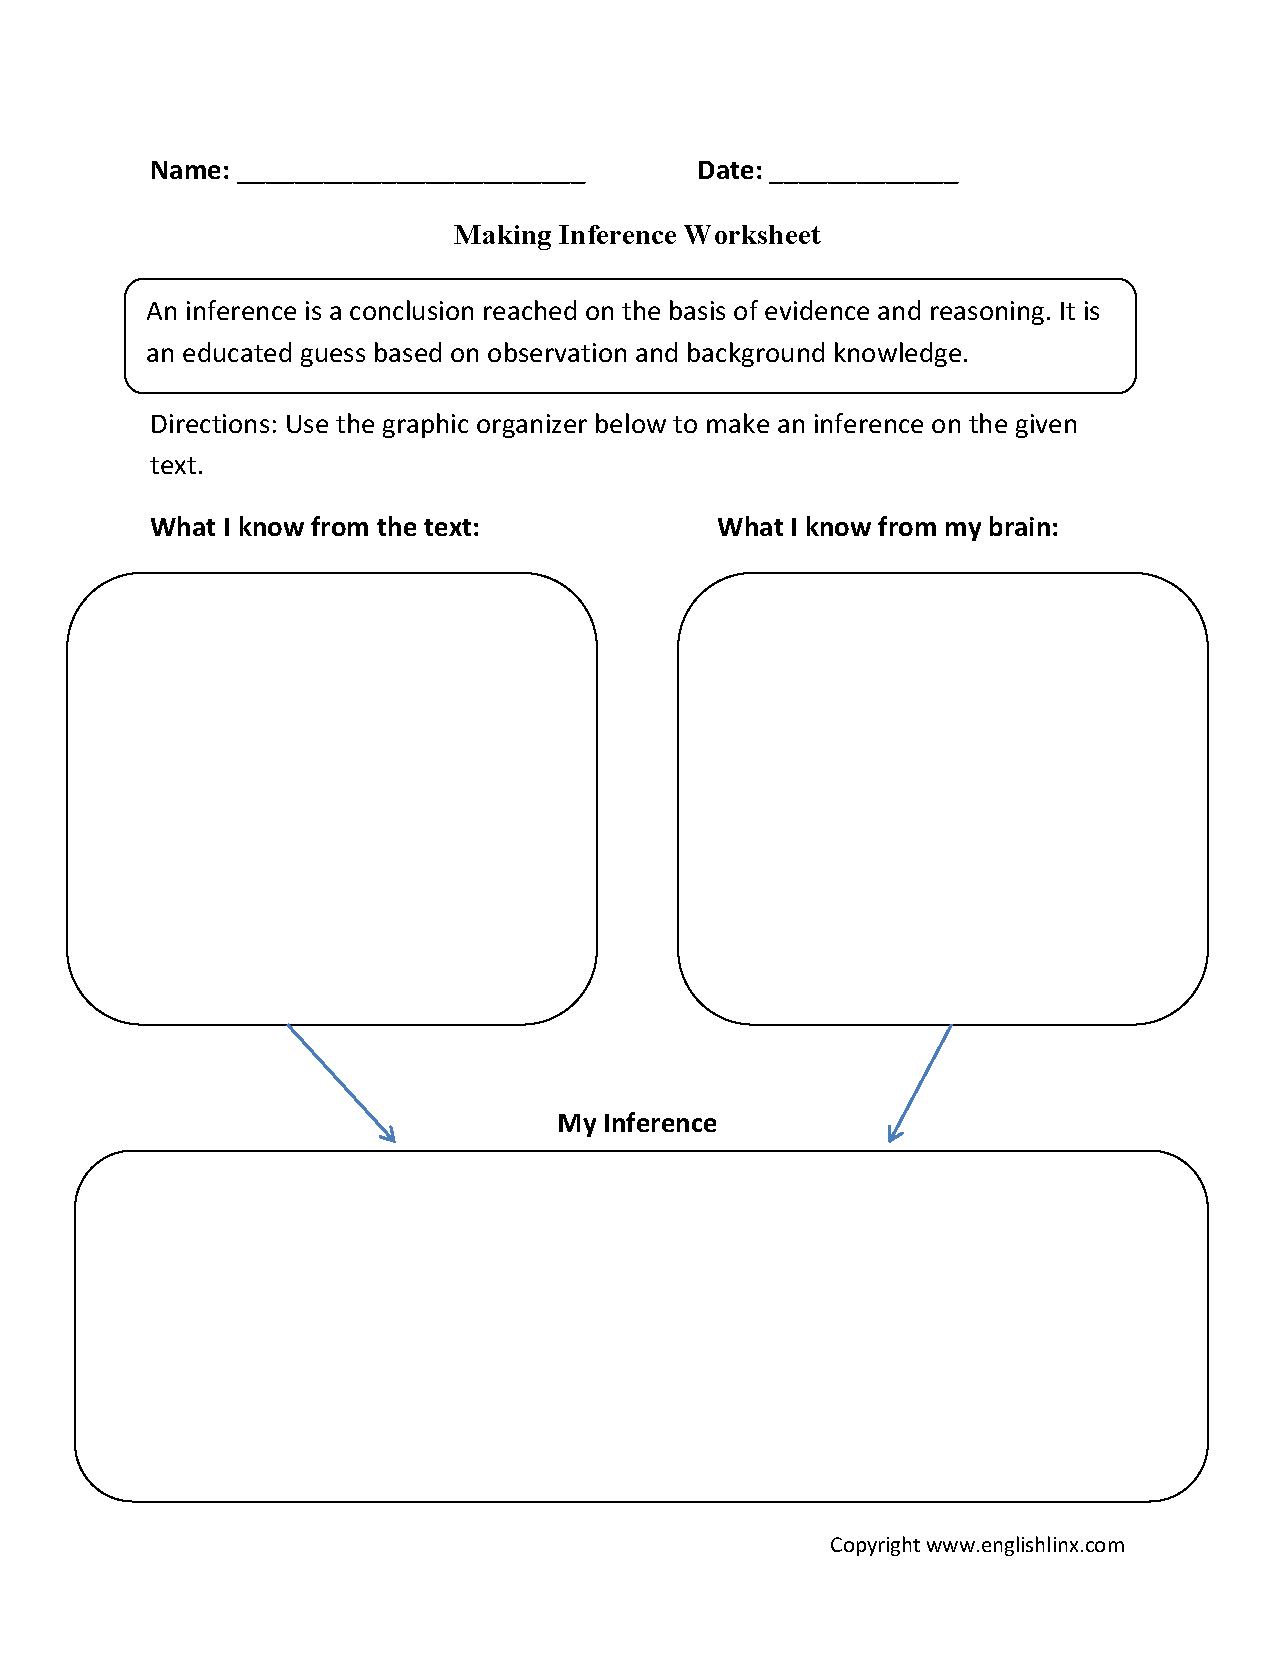 Printables Making Inferences Worksheet reading worksheets inference making worksheet